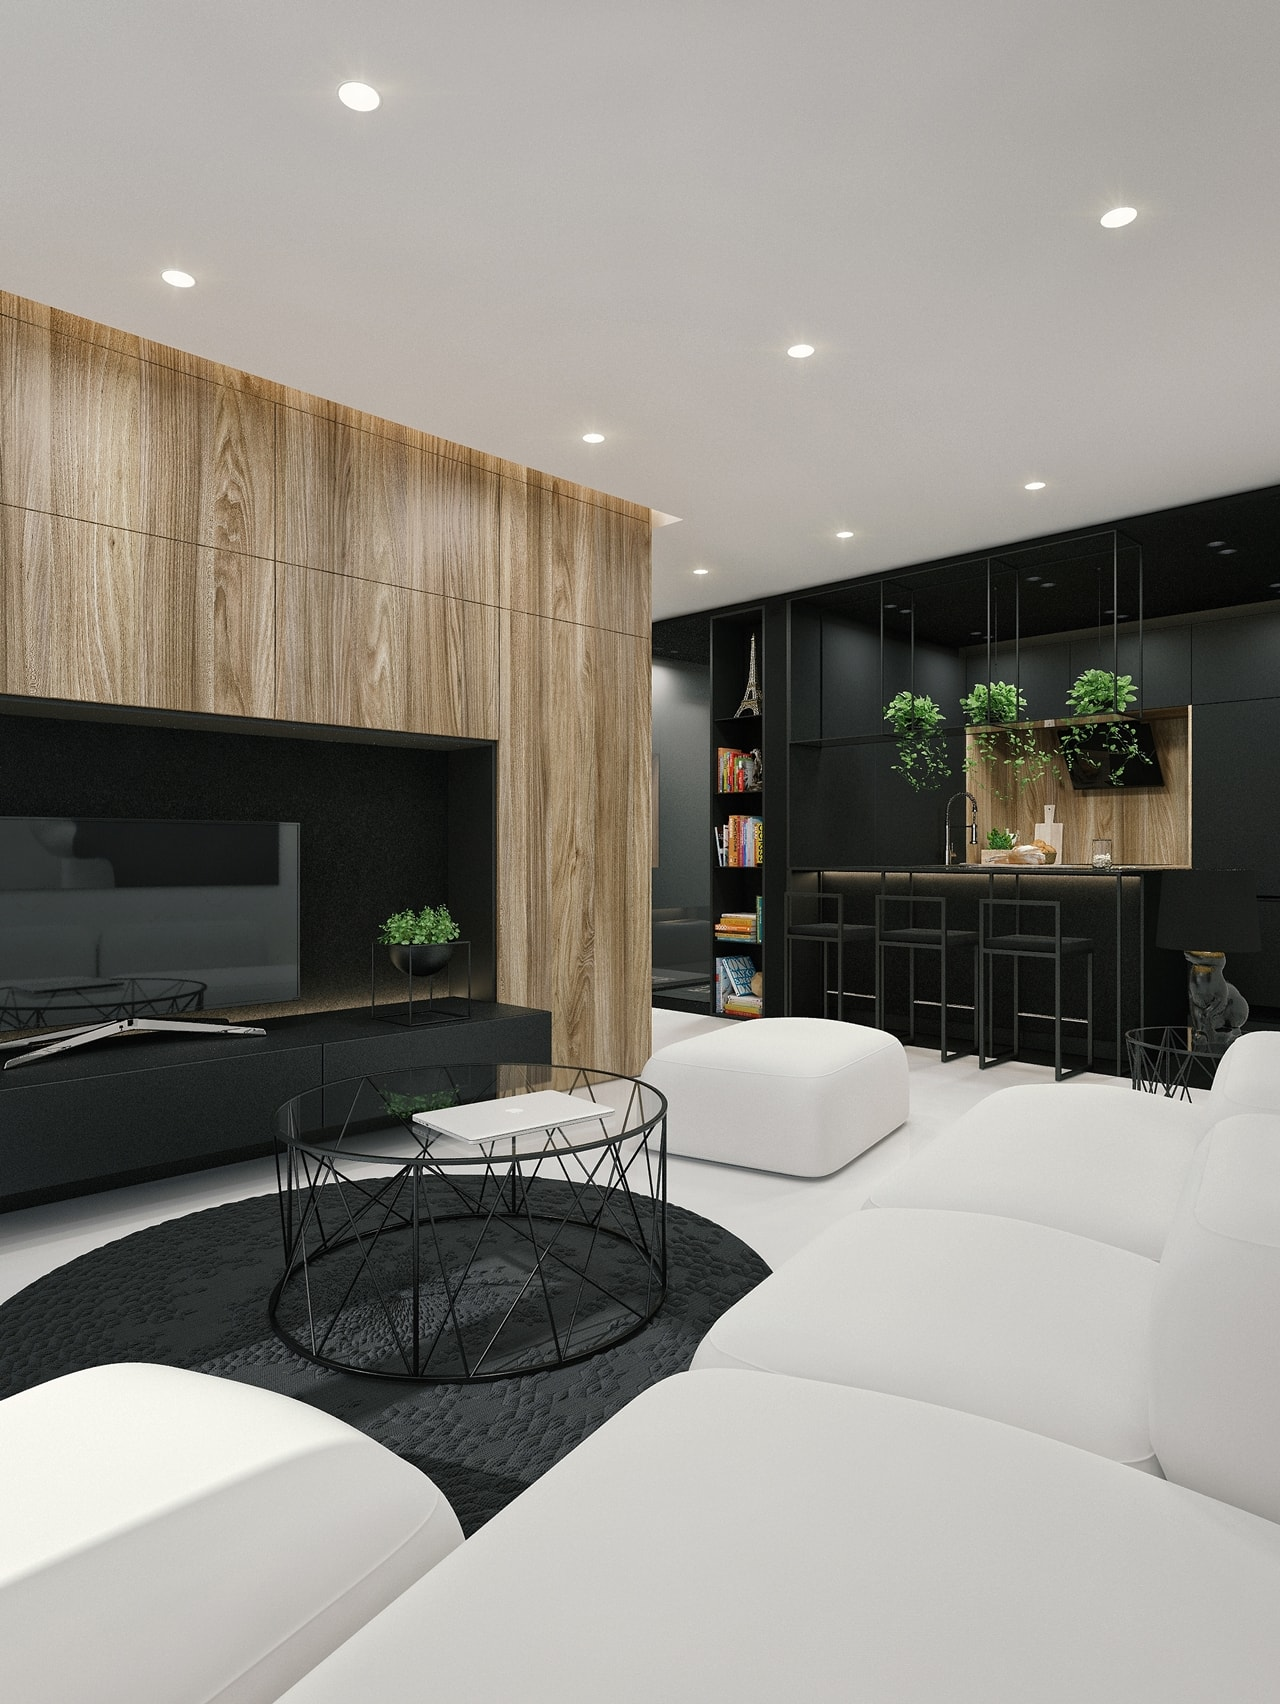 Black and white interior design ideas modern apartment by for Flat interior design ideas